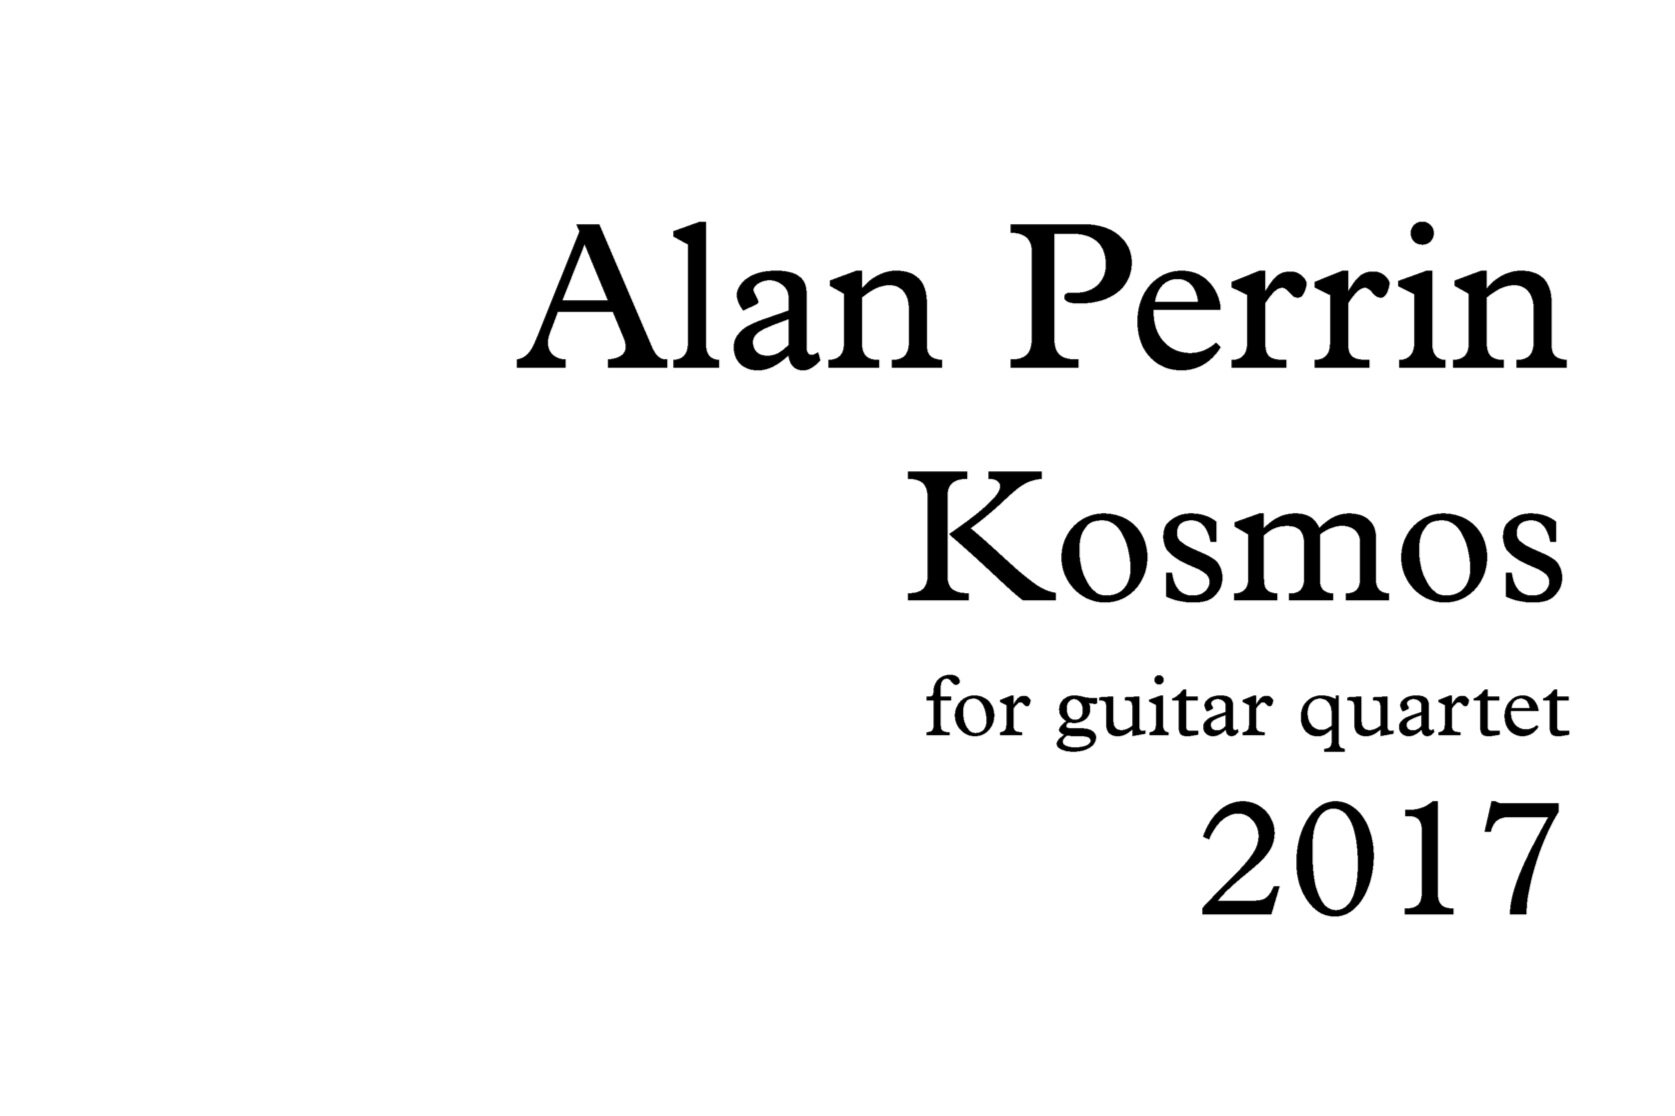 Pages+from+Kosmos+for+guitar+quartet_Alan+Perrin_a4_.pdf.jpg